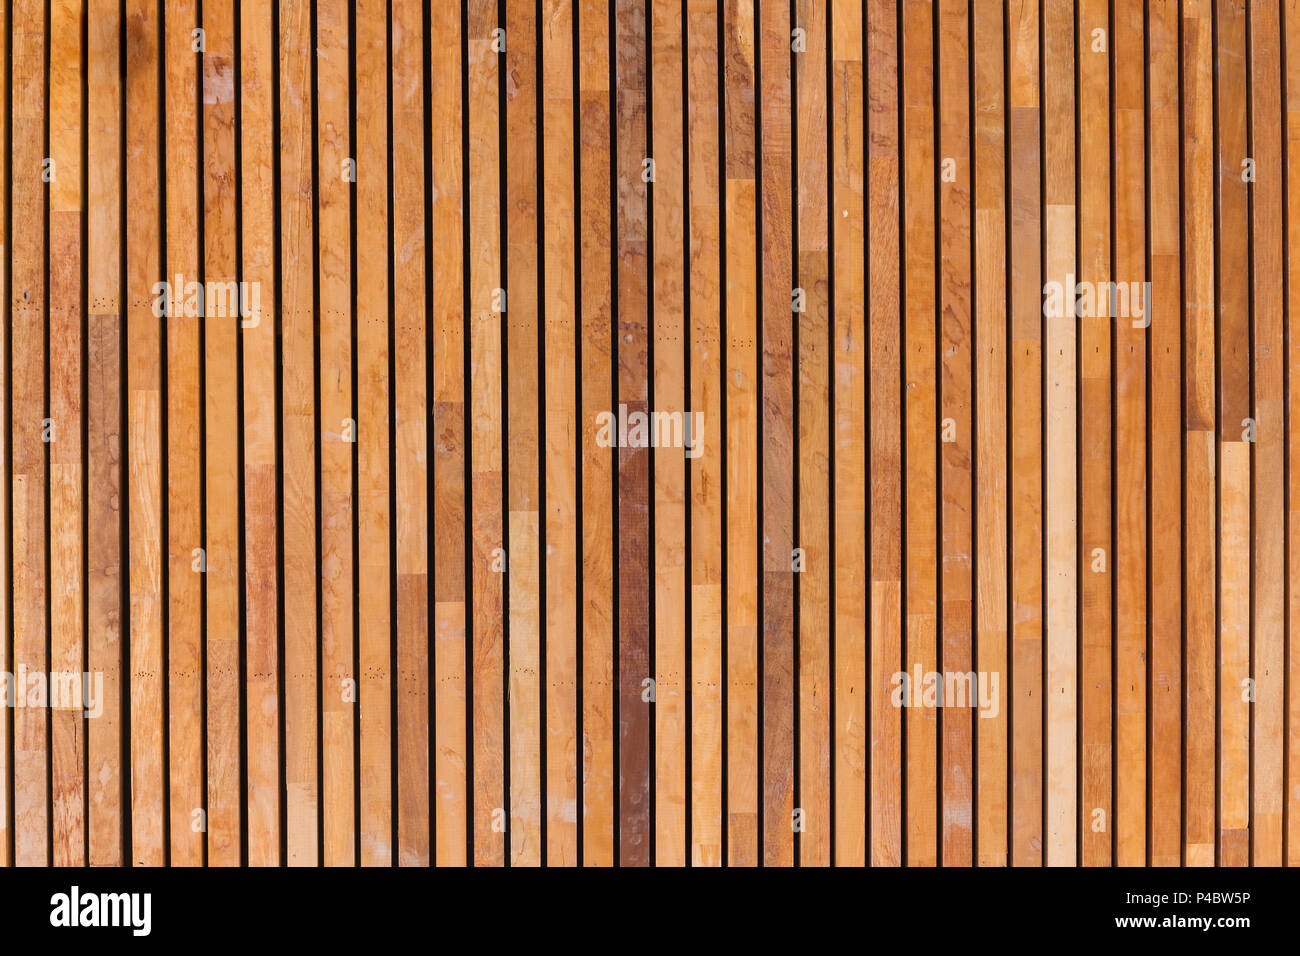 Old Wood Ceiling Texture Design Interior Background